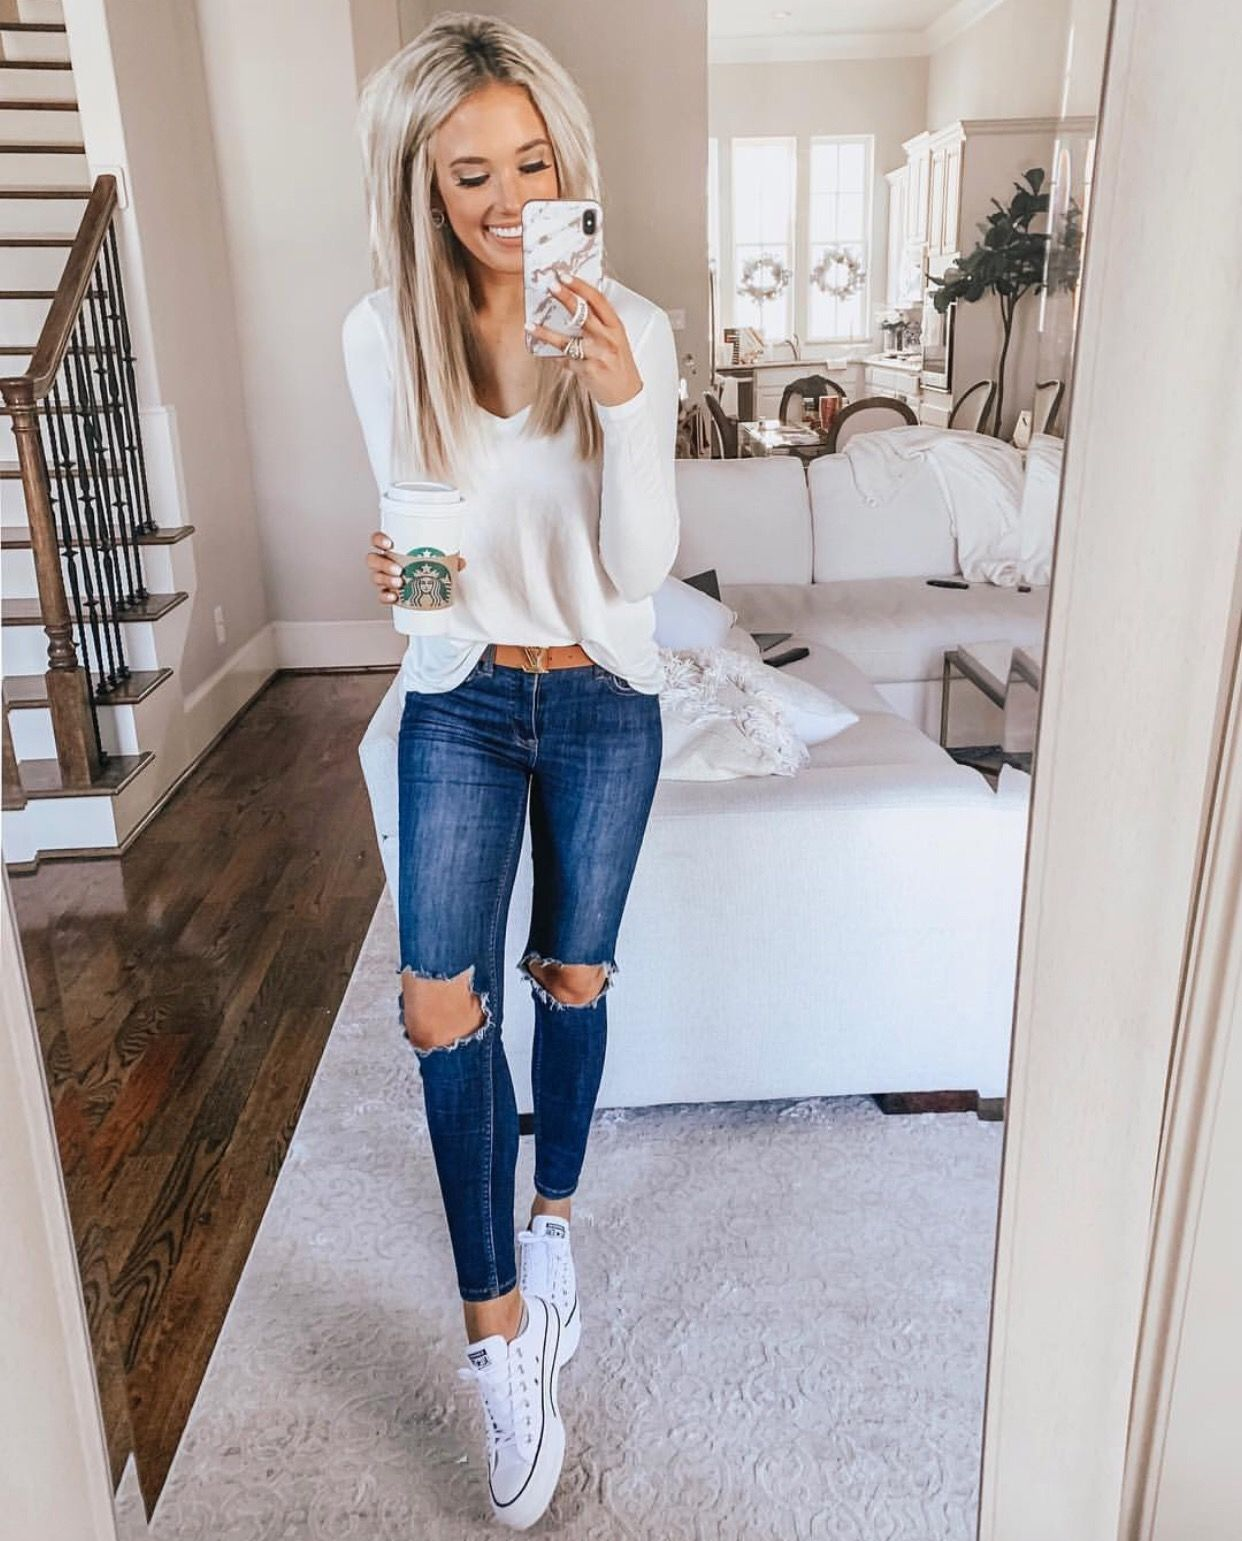 P I N T E R E S T Blairh0gan Basic Outfits Casual Weekend Outfit Outfits